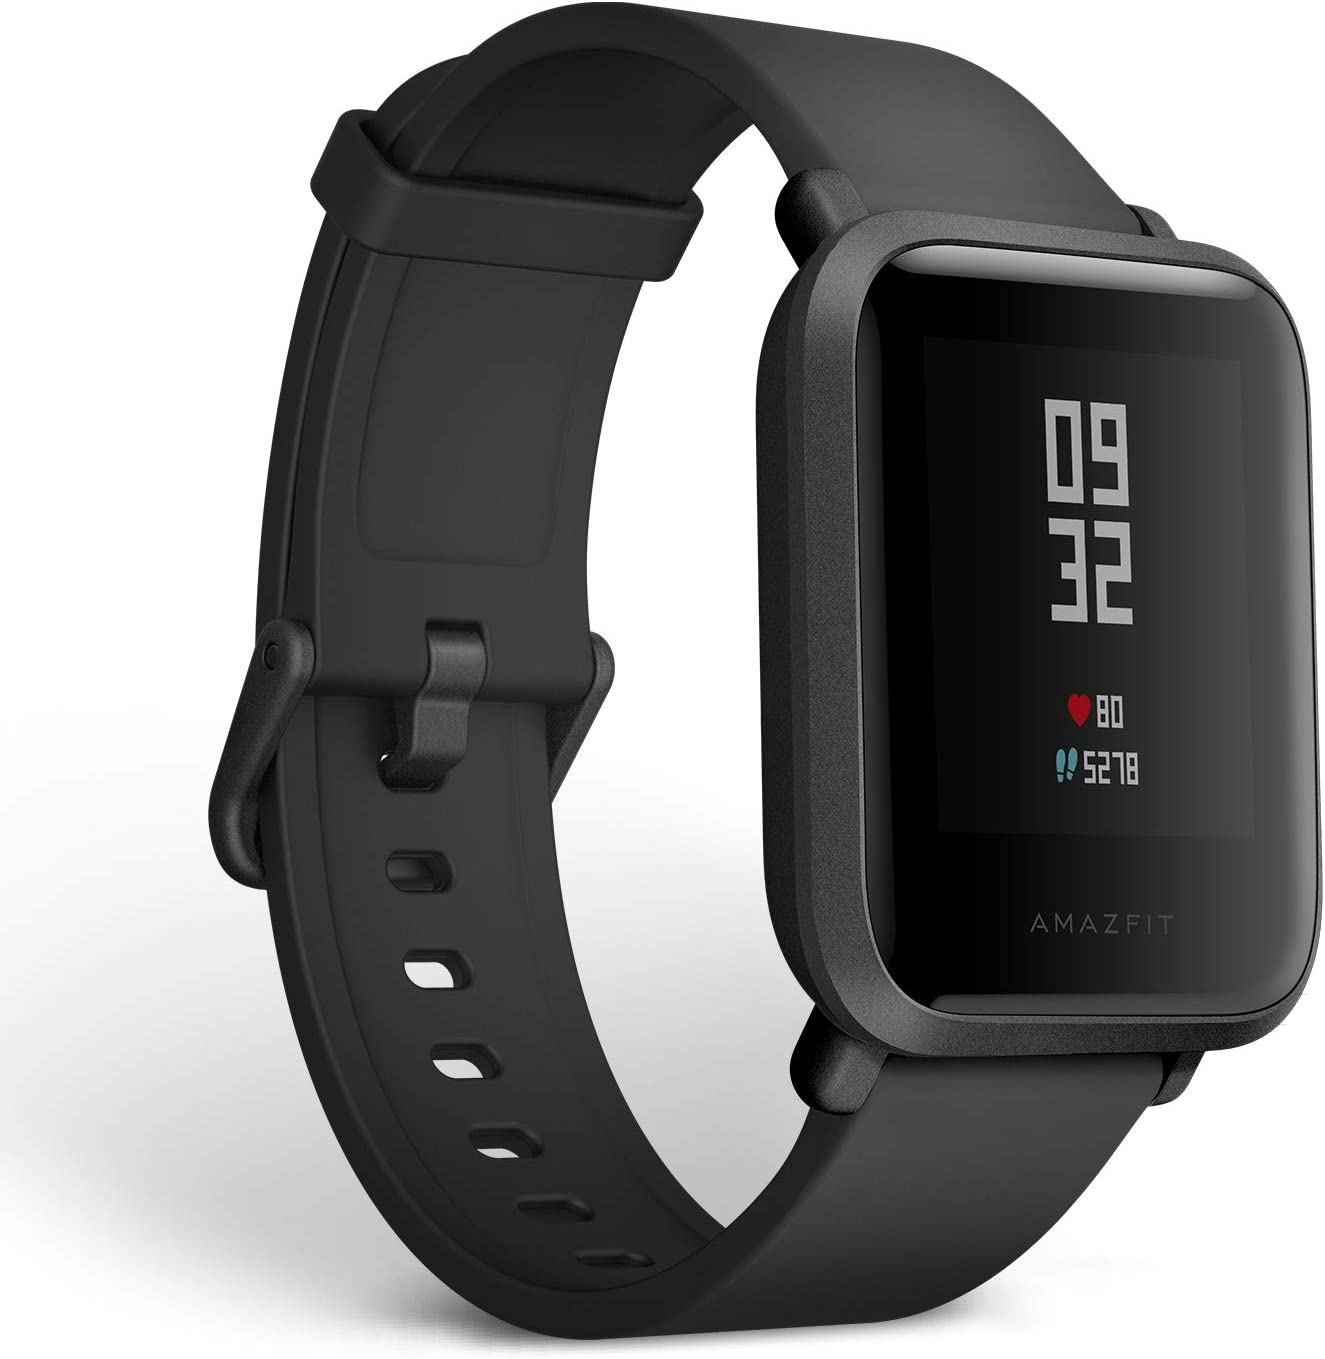 B078YRTS86 Amazfit Bip Smartwatch with All-Day Heart Rate and Activity Tracking, Sleep Monitoring, GPS, Ultra-Long Battery Life, Bluetooth, US Service and Warranty (A1608 Black) 61b7GRV385L